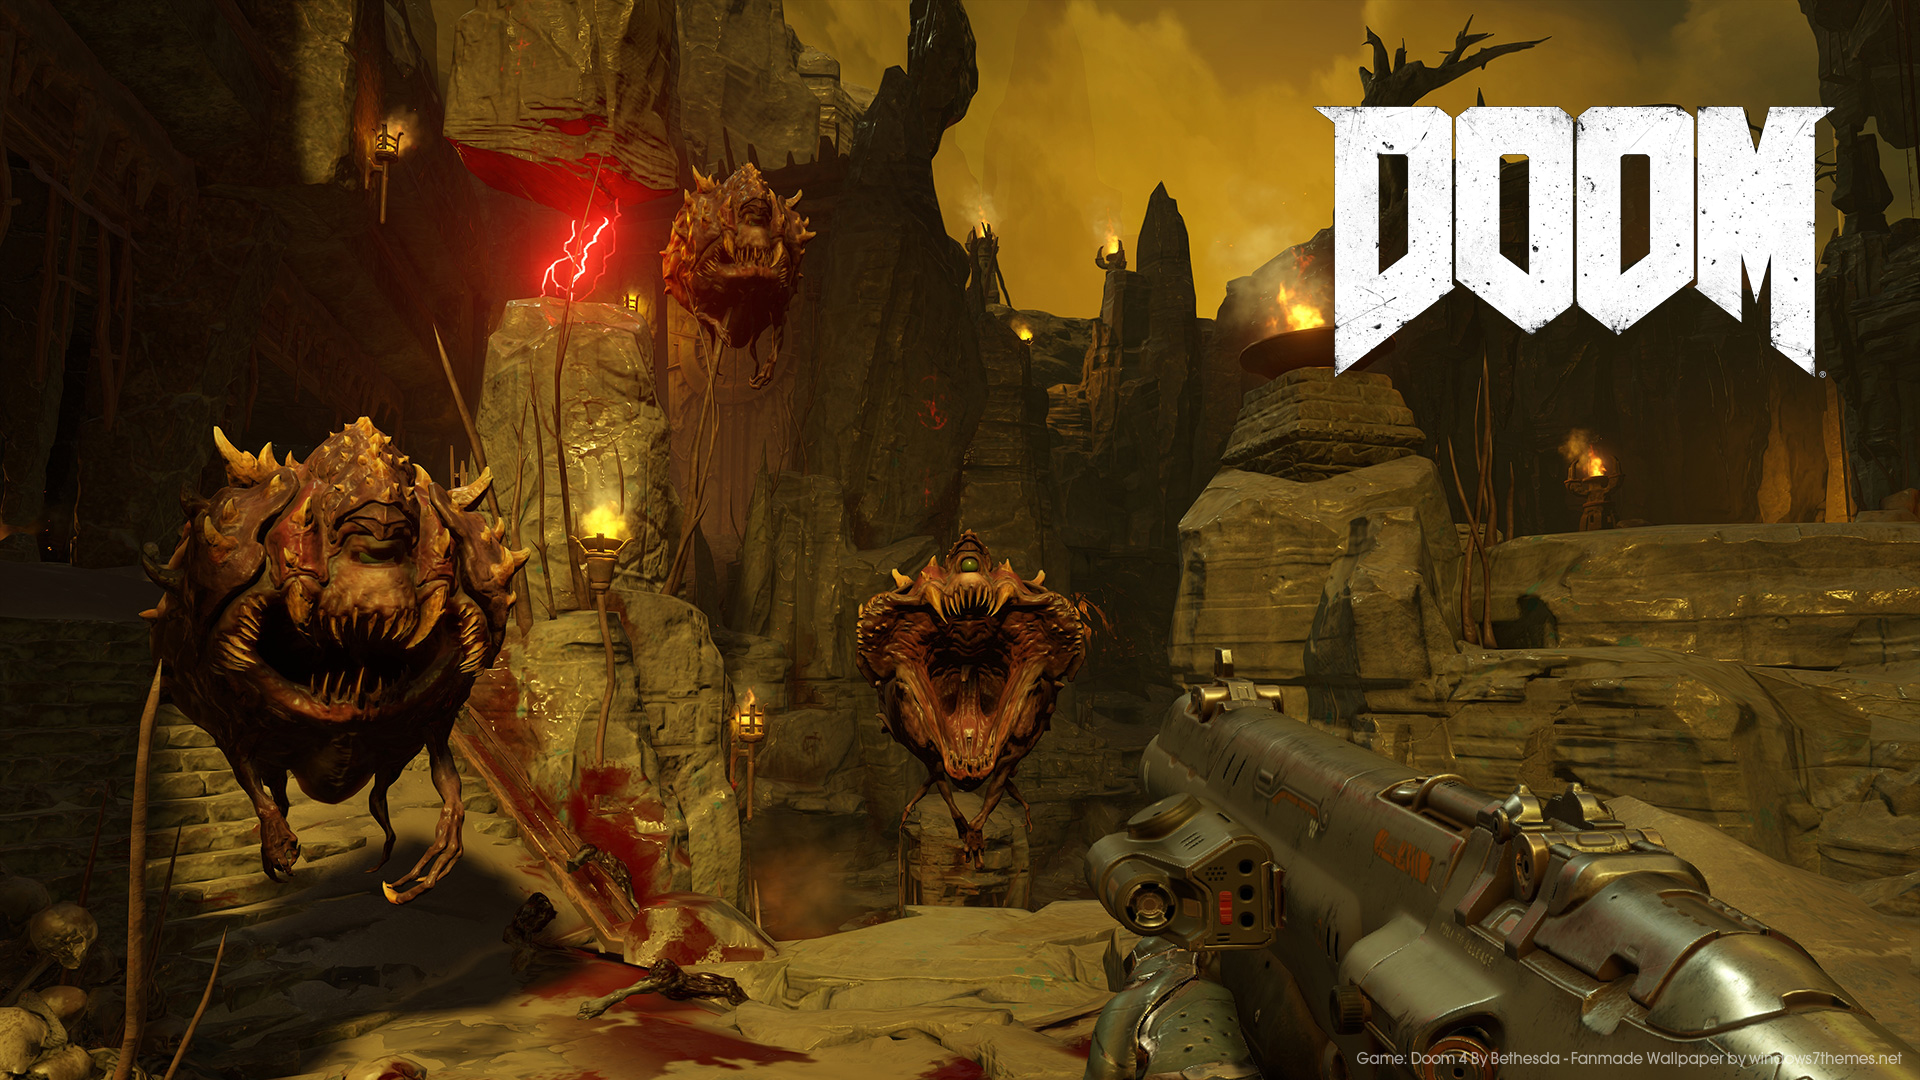 DOOM CD Key+Action PC Game For Free Download